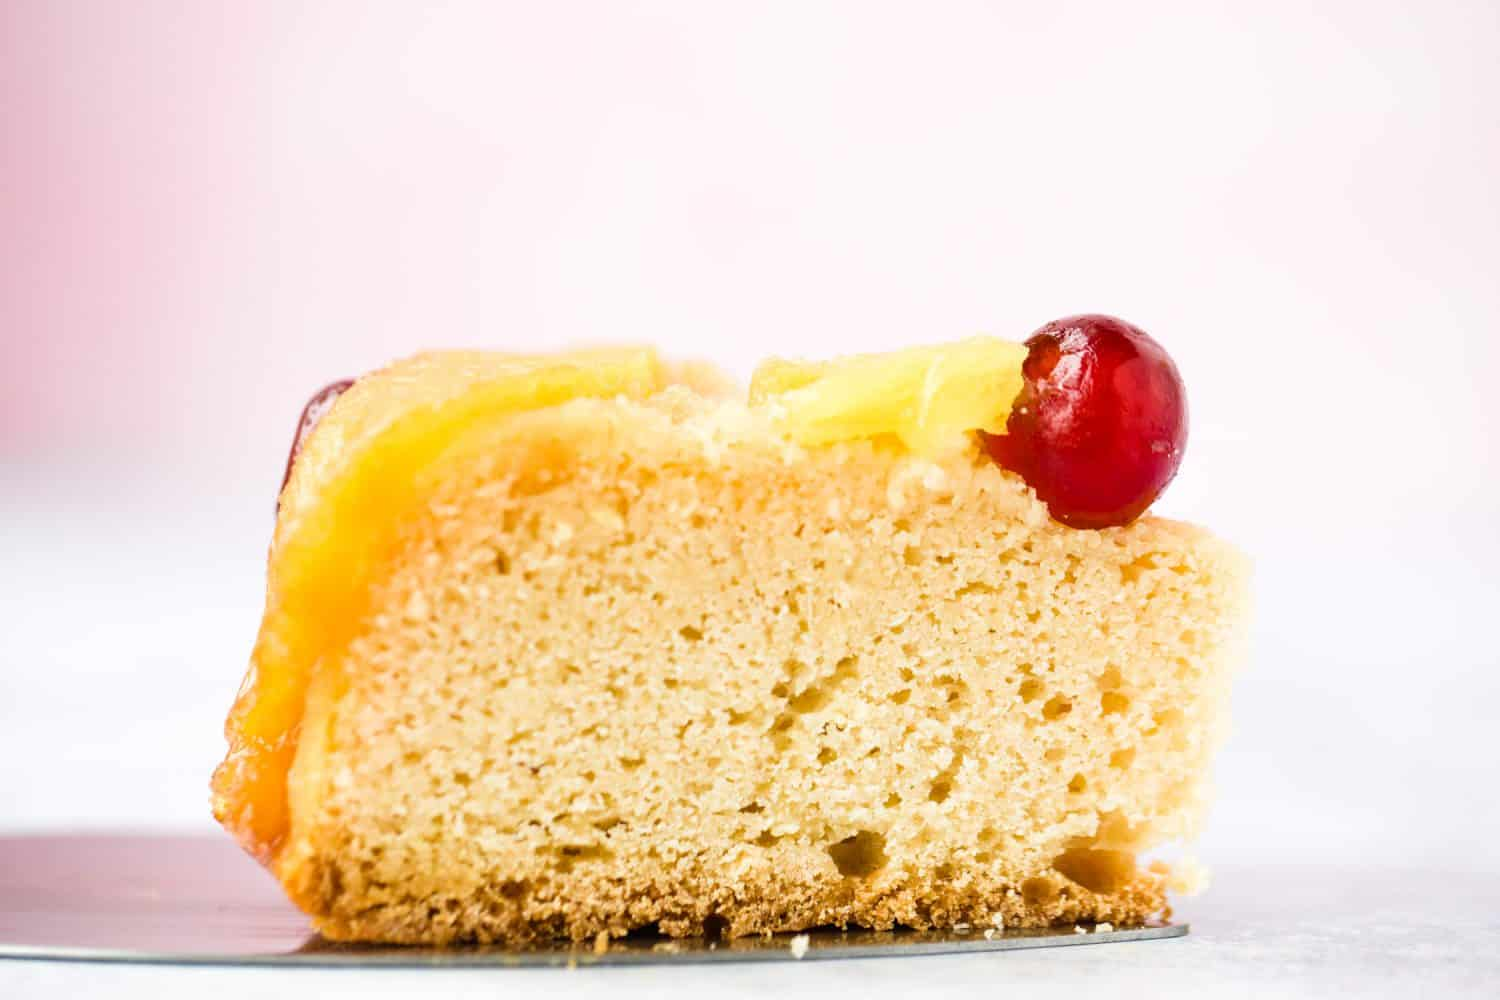 Side profile of a piece of sponge cake with pineapple and a cherry on top.